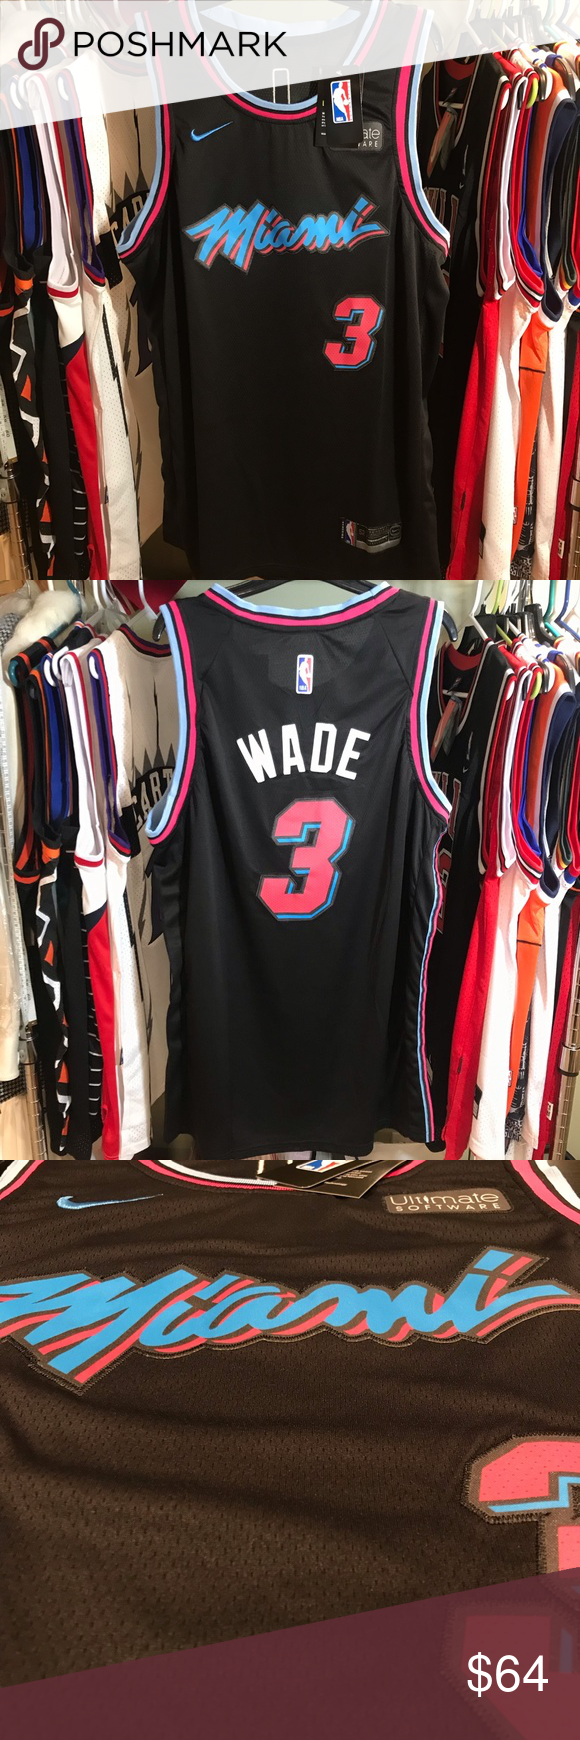 Miami Heat D Wade Vice City Night Edition Jersey Brand New With Tags Miami Heat Vice City Night Edition Nike Swingman Dry Vintage Champion Brand Tags Mens Xl